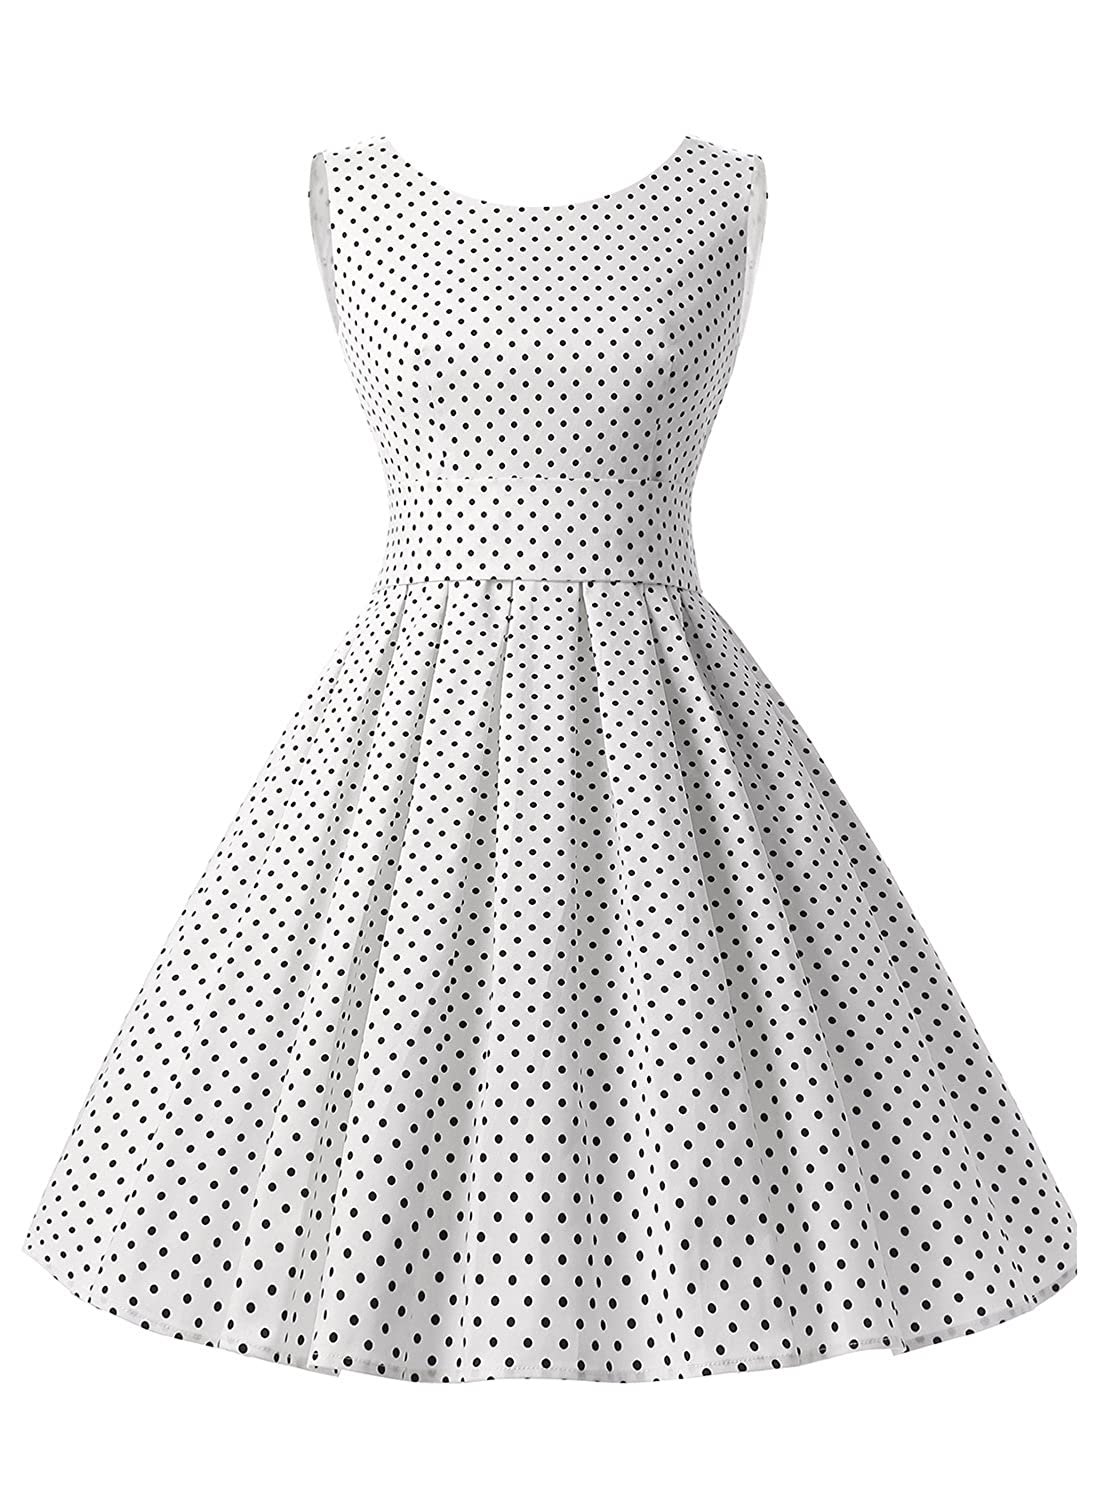 1940s Pinup Dresses for Sale Dressystar Vintage 1950s Audrey Hepburn Style Rockabilly Swing Party Prom Dress $24.69 AT vintagedancer.com